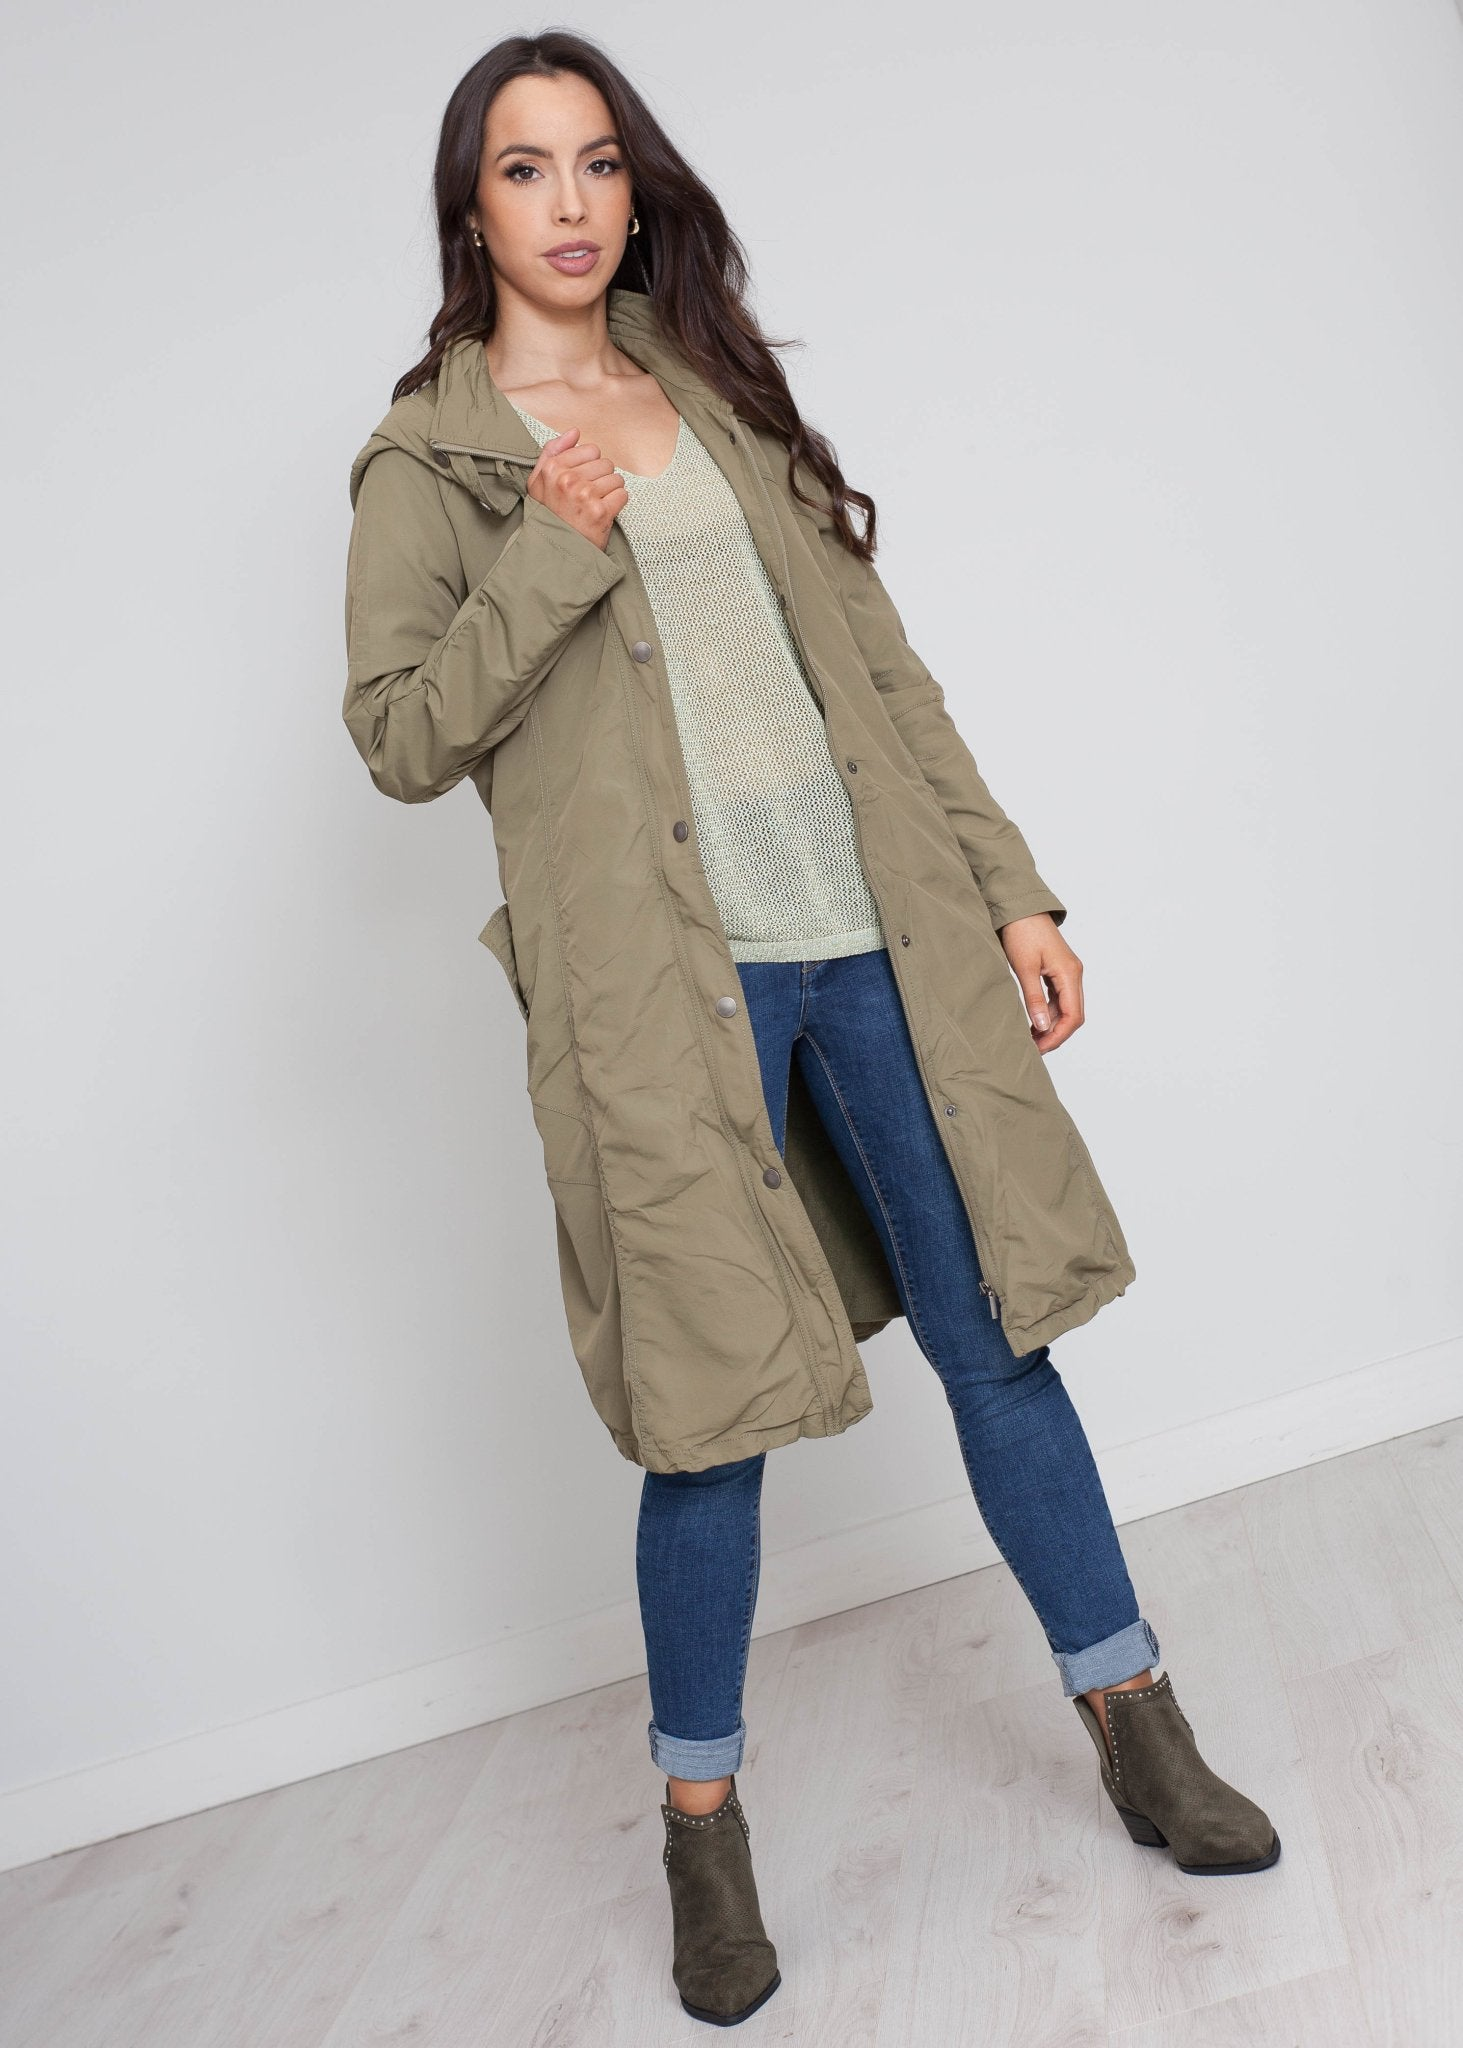 Priya Swing Style Raincoat In Khaki - The Walk in Wardrobe